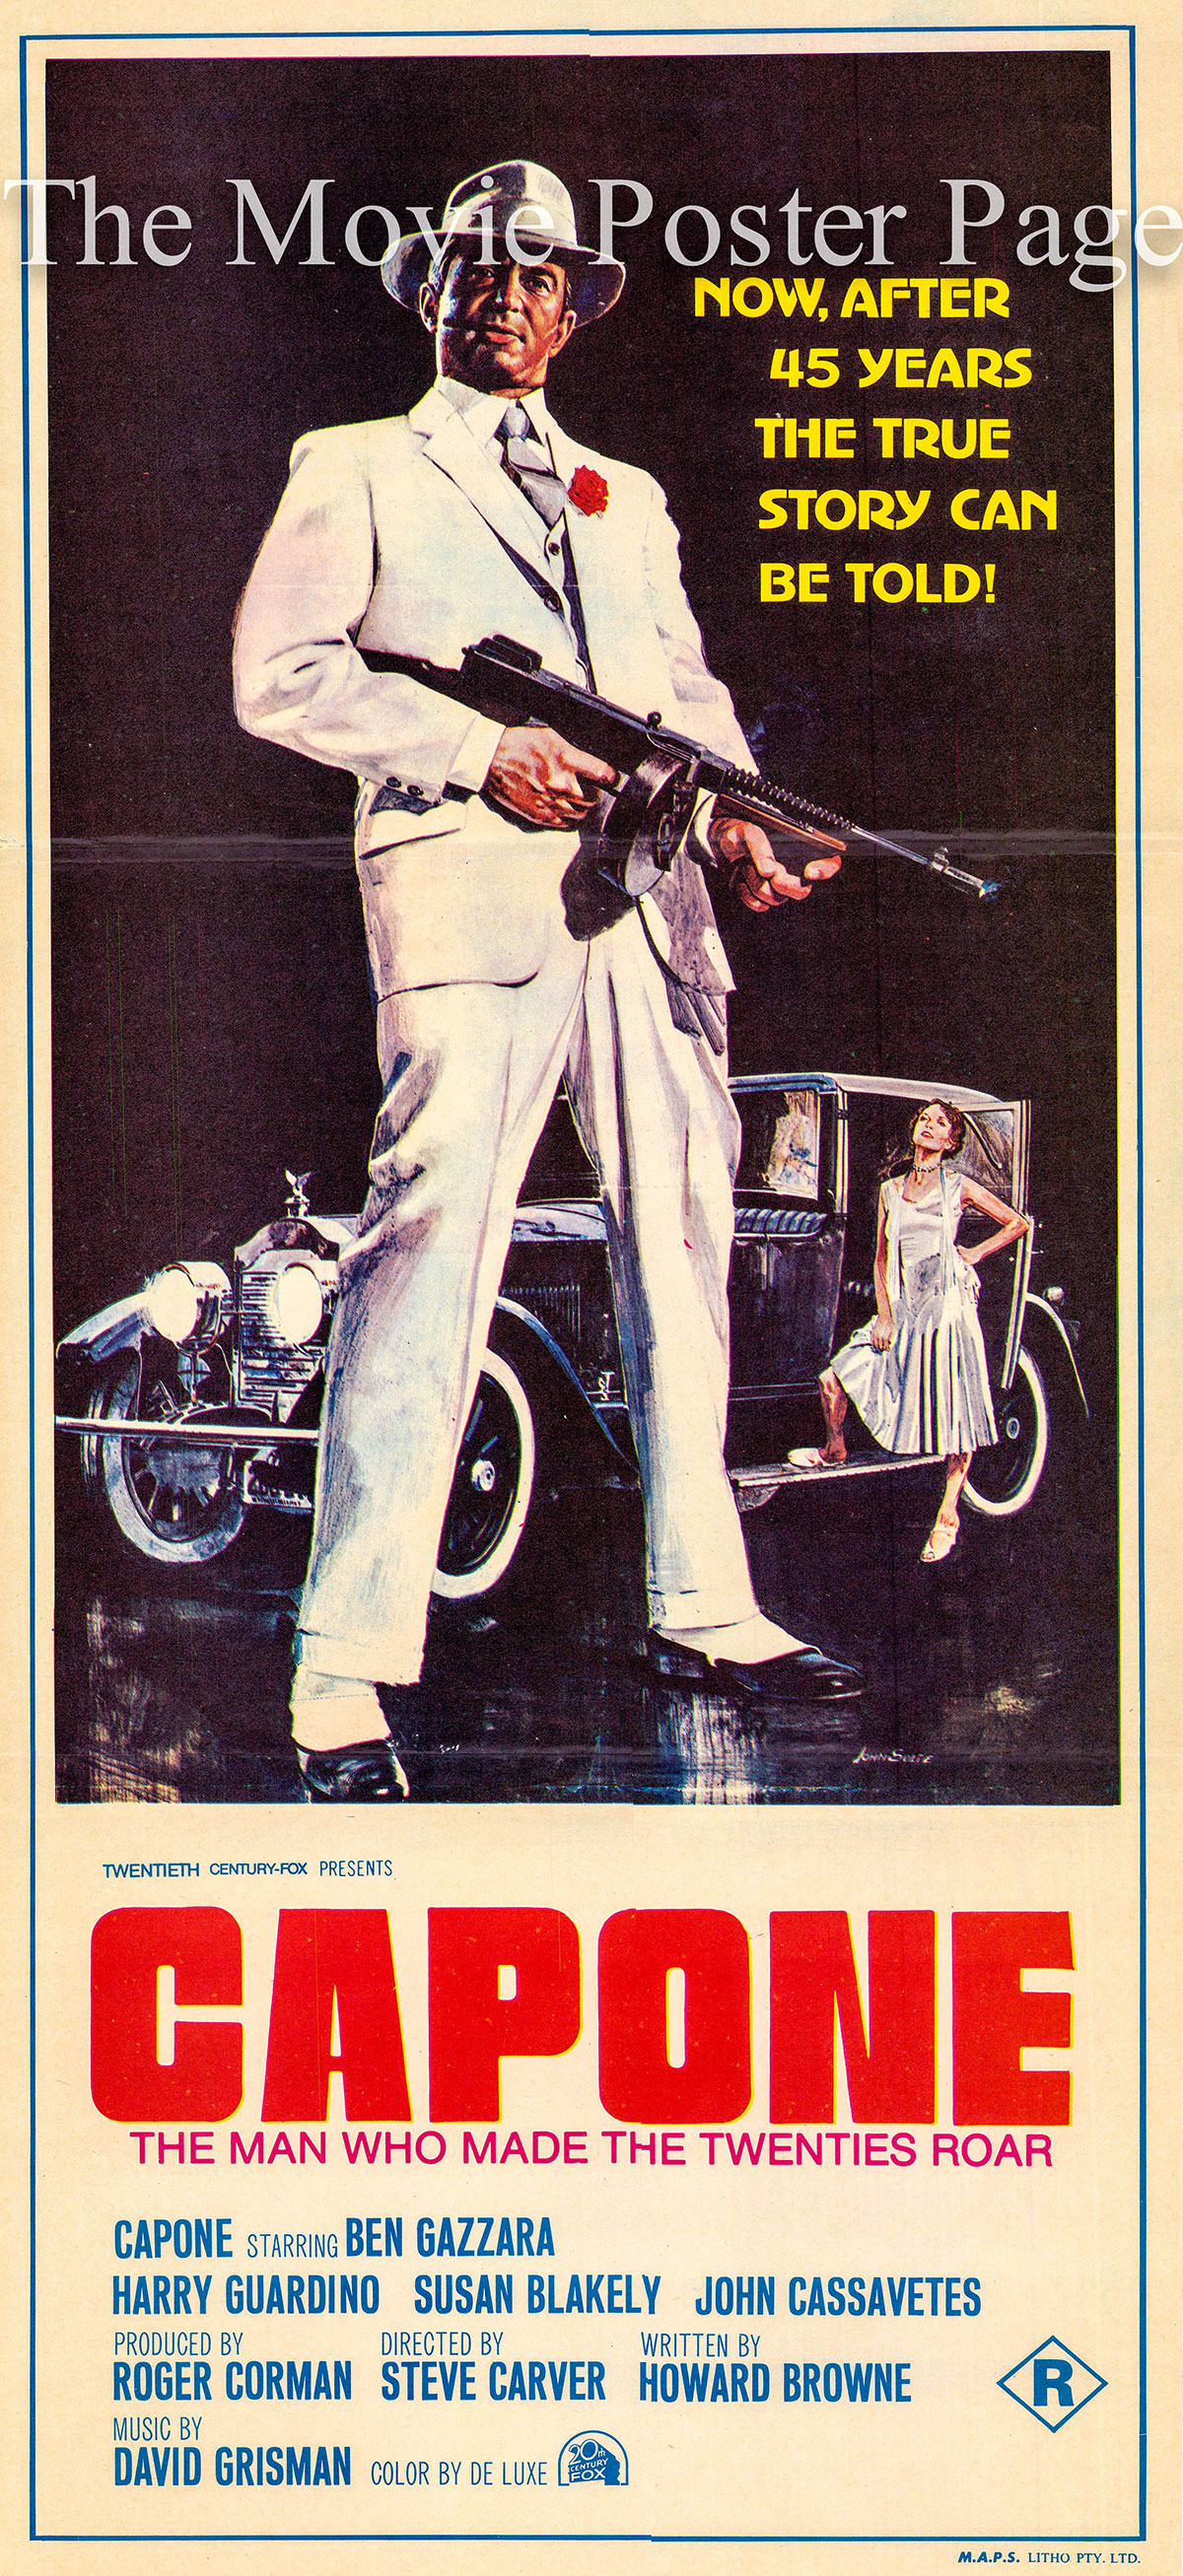 Pictured is an Australian daybill promotional poster for the 1975 Steve Carver film Capone starring Ben Gazzara.